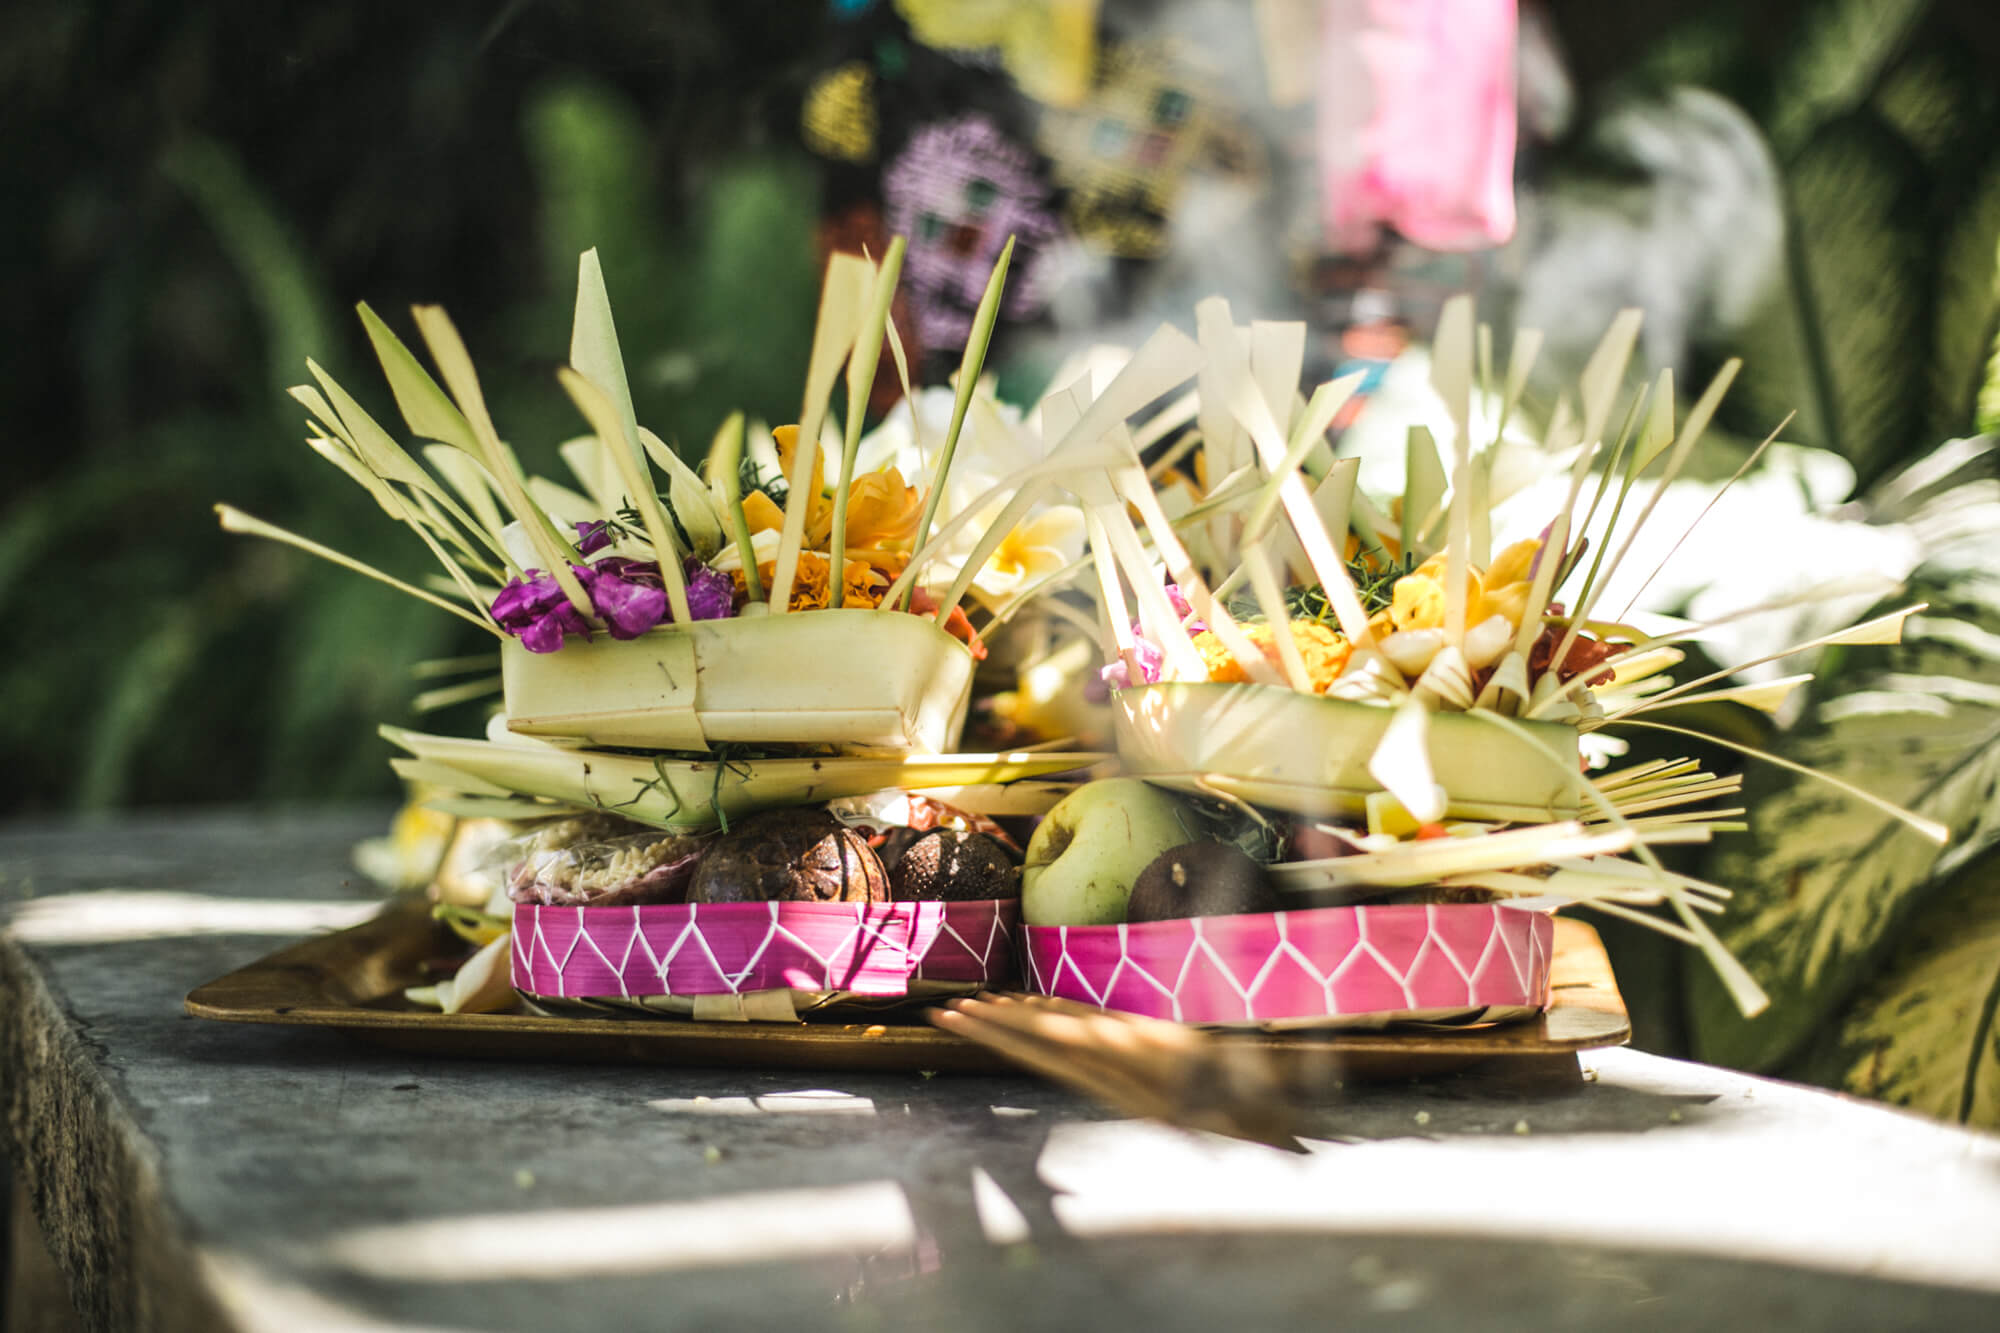 Fruit and Flowers - The Place Retreats Bali